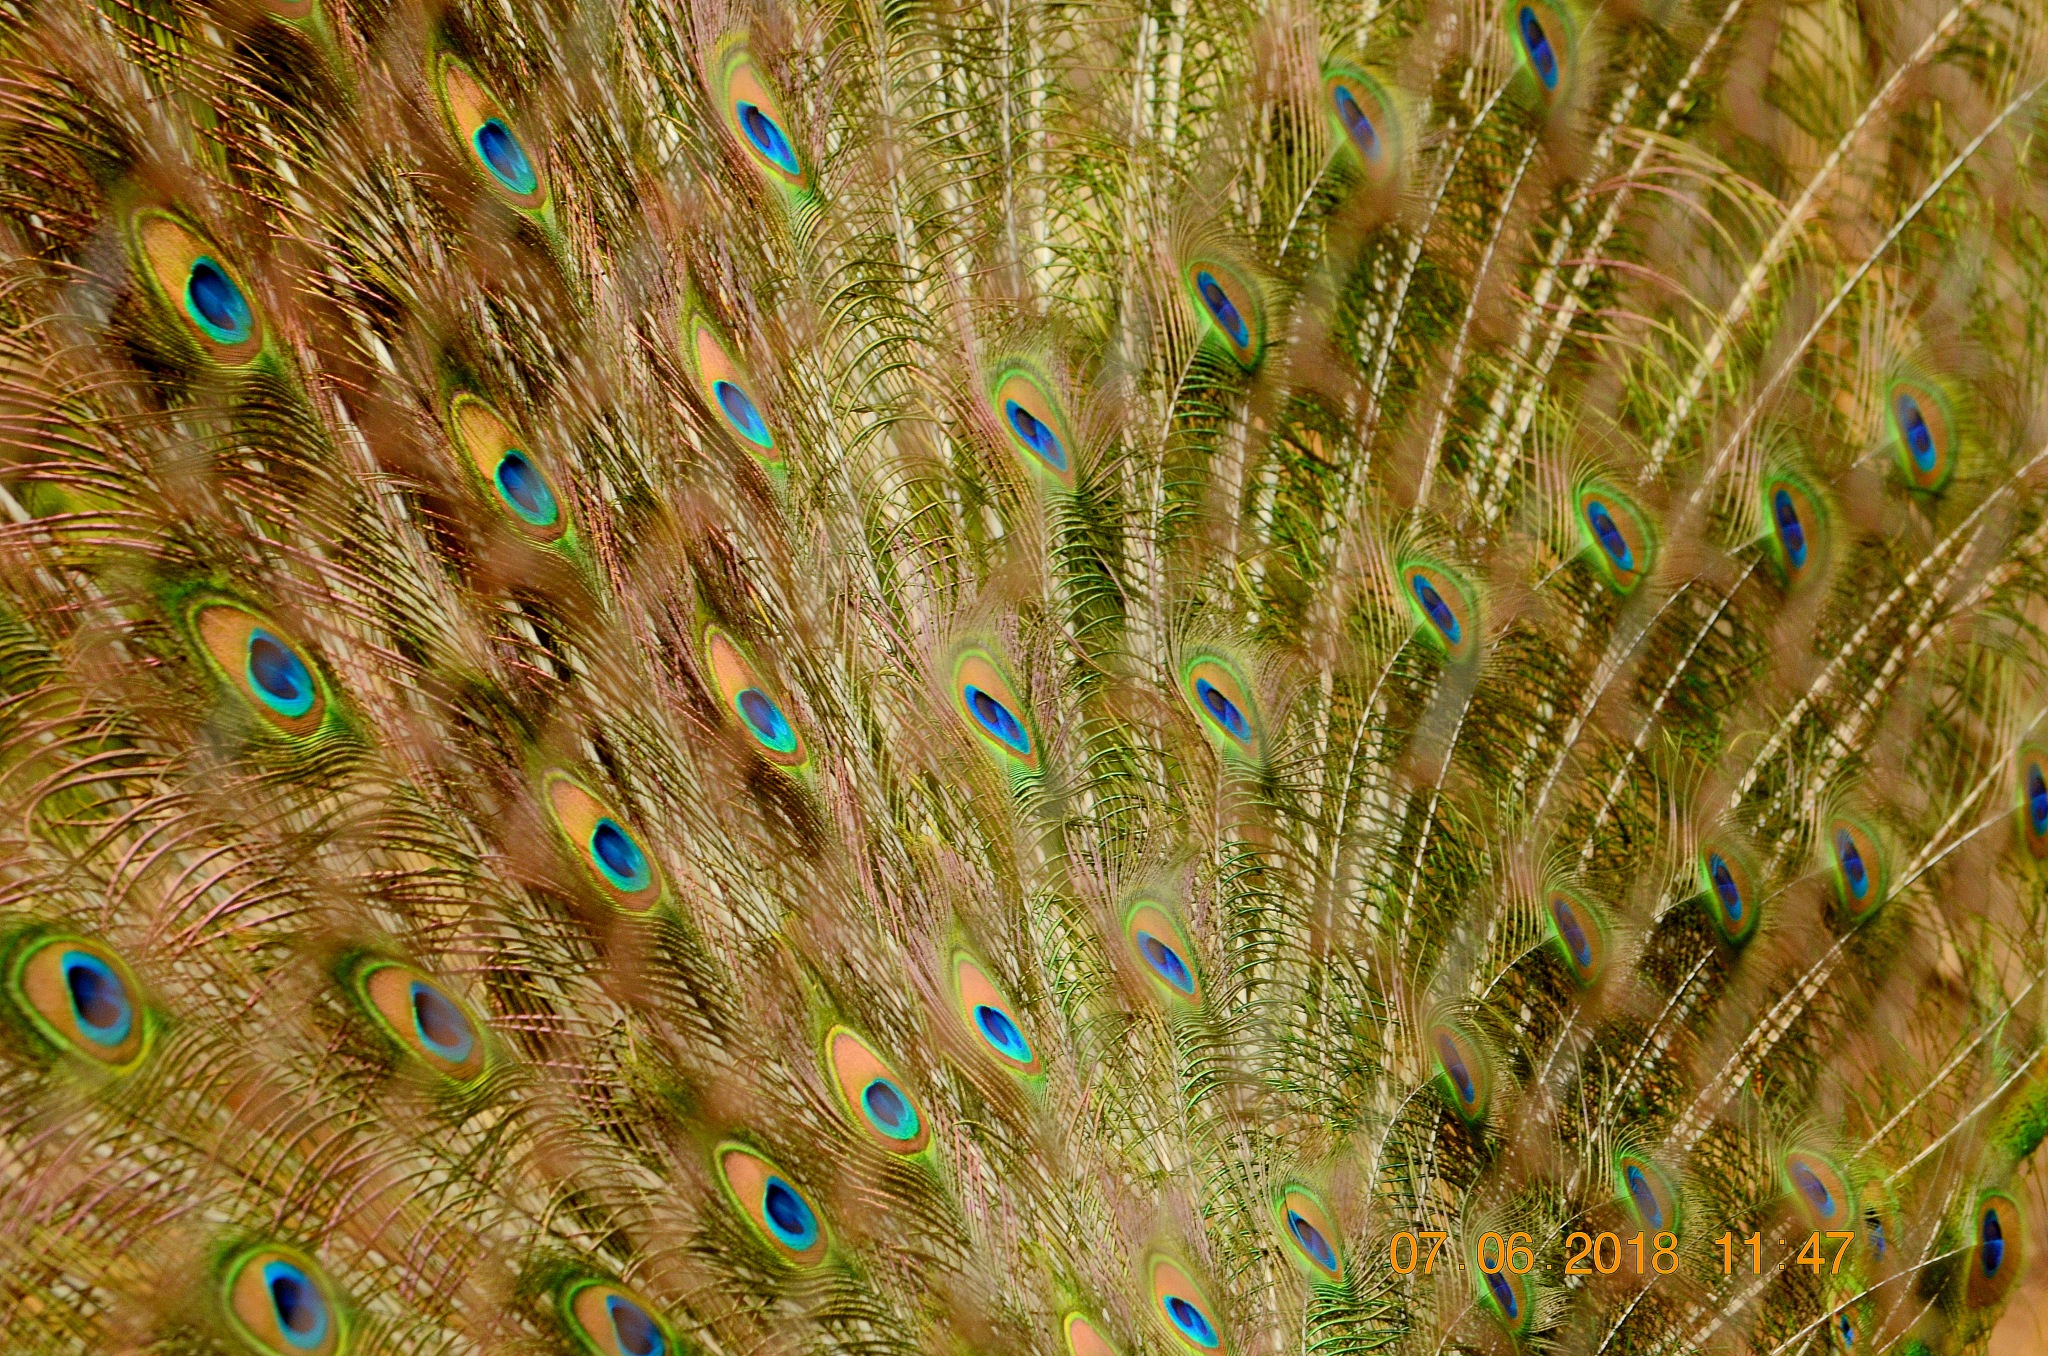 The feathers by Sunil